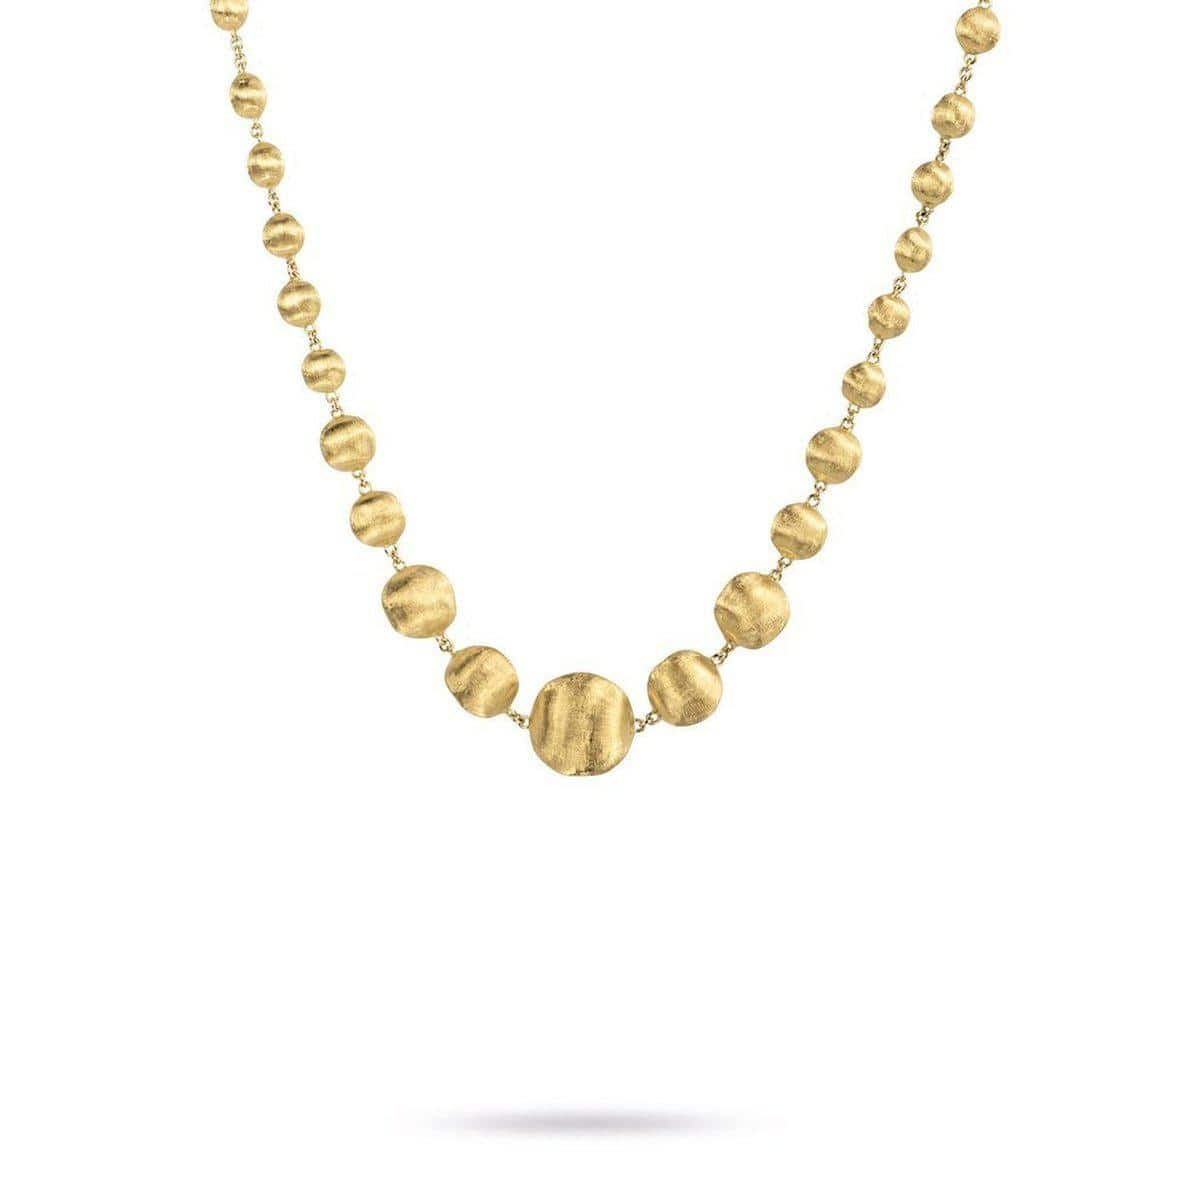 Africa Necklace - CB1416-Y-Marco Bicego-Renee Taylor Gallery